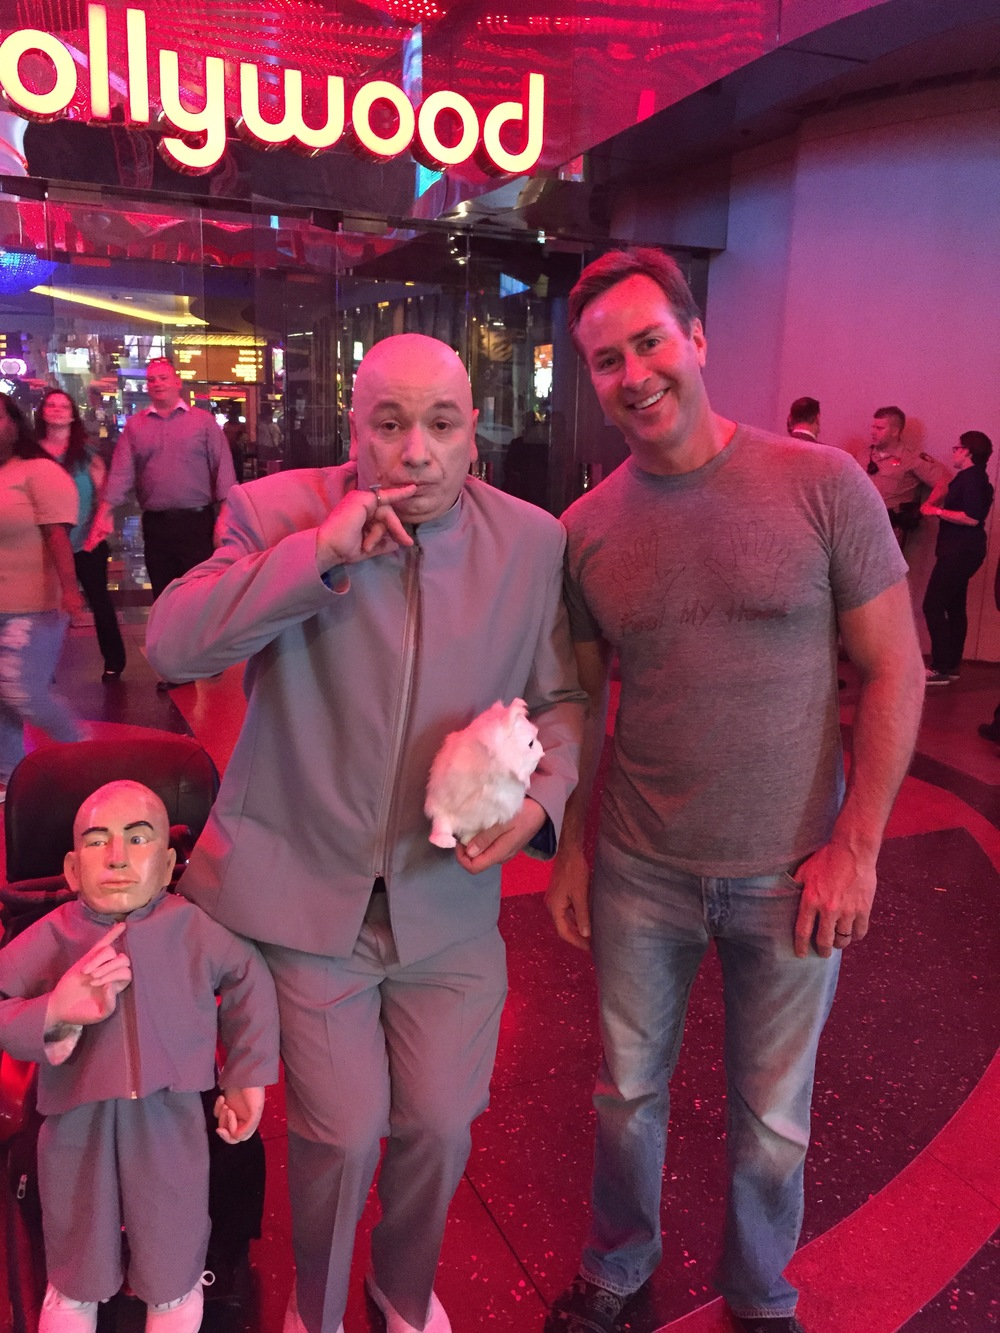 You never know who you'll meet on the Las Vegas Strip!